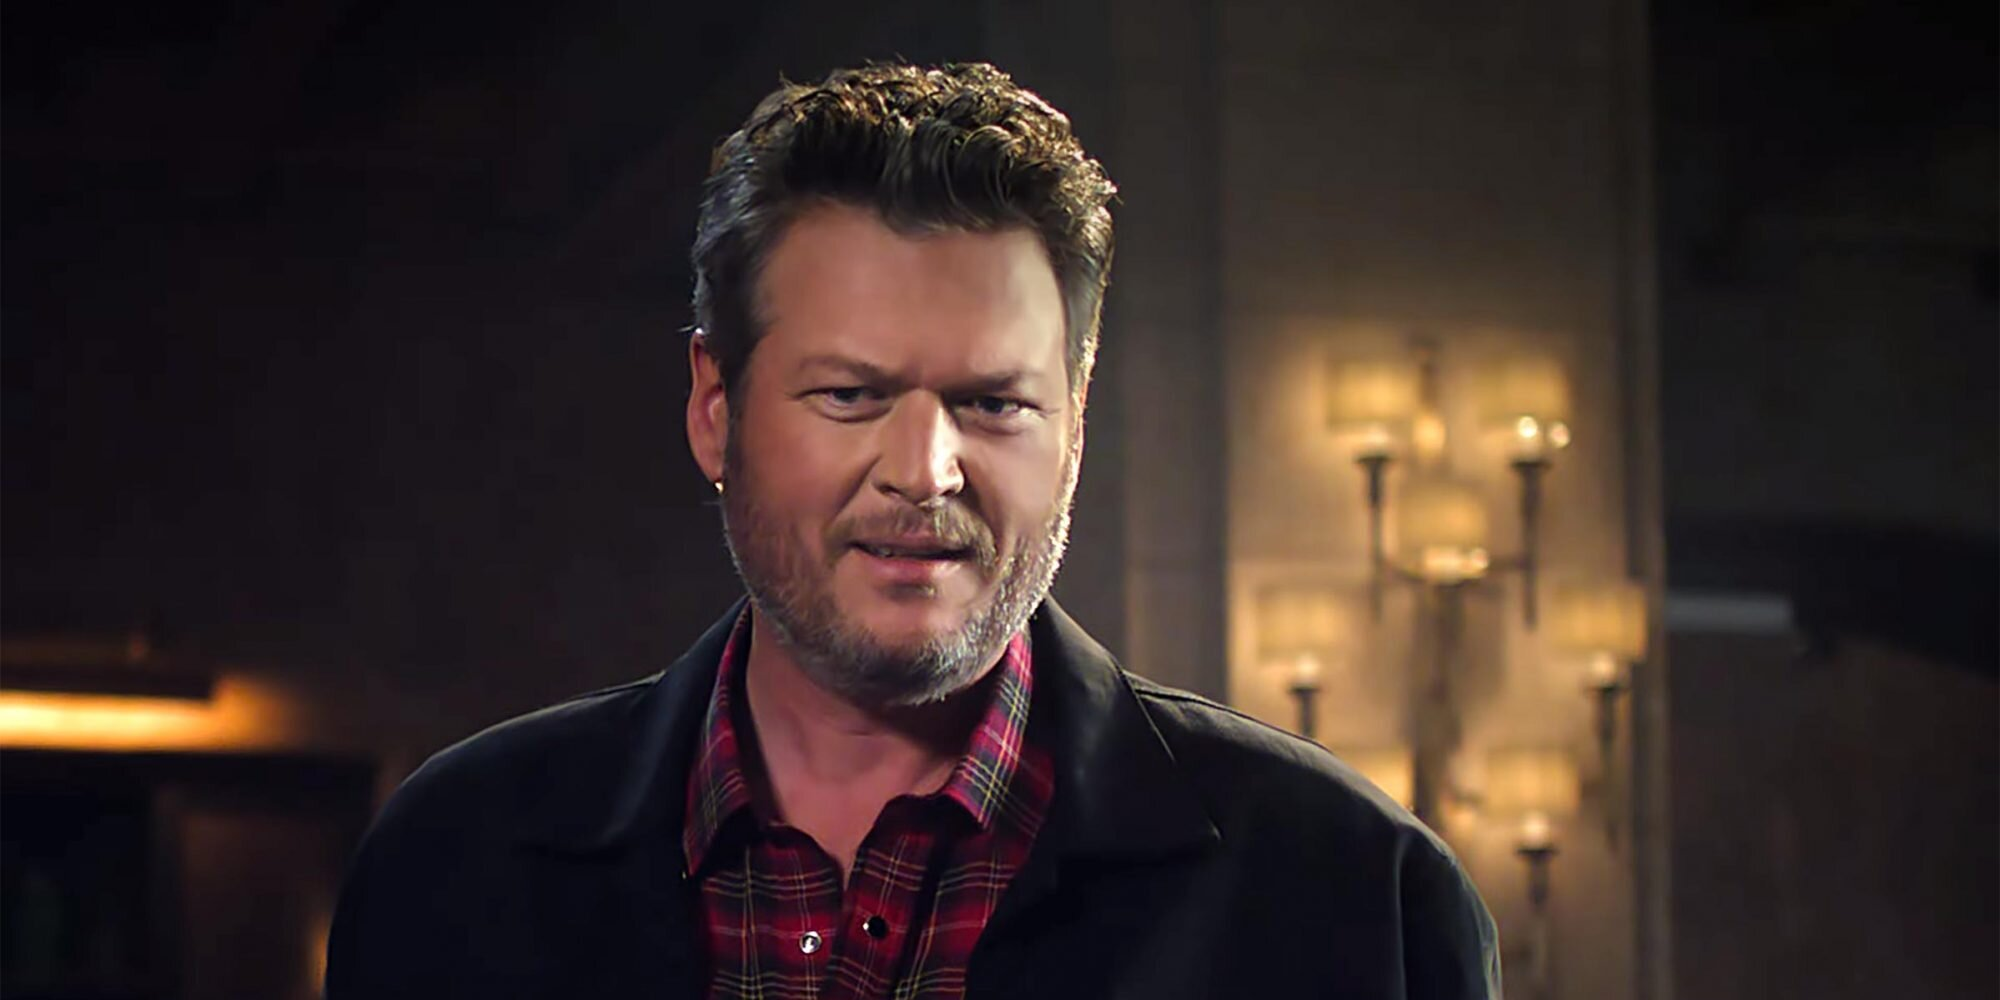 Blake Shelton on the response to his Super Bowl commercial: 'My phone was smoking last night' - Entertainment Weekly